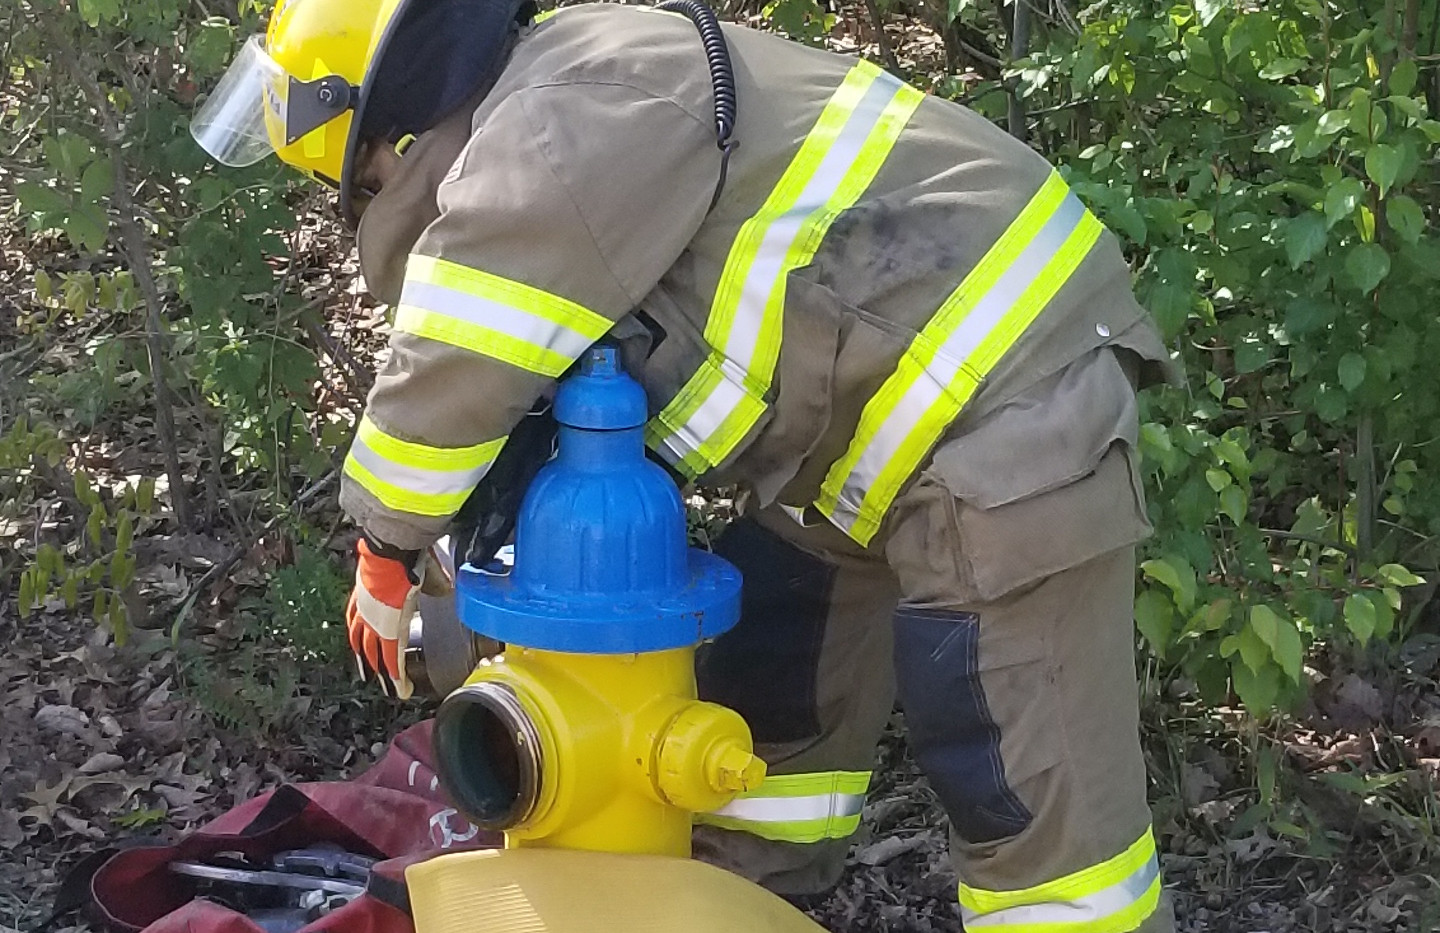 Firefighter Hooking up a hose to Hydrant